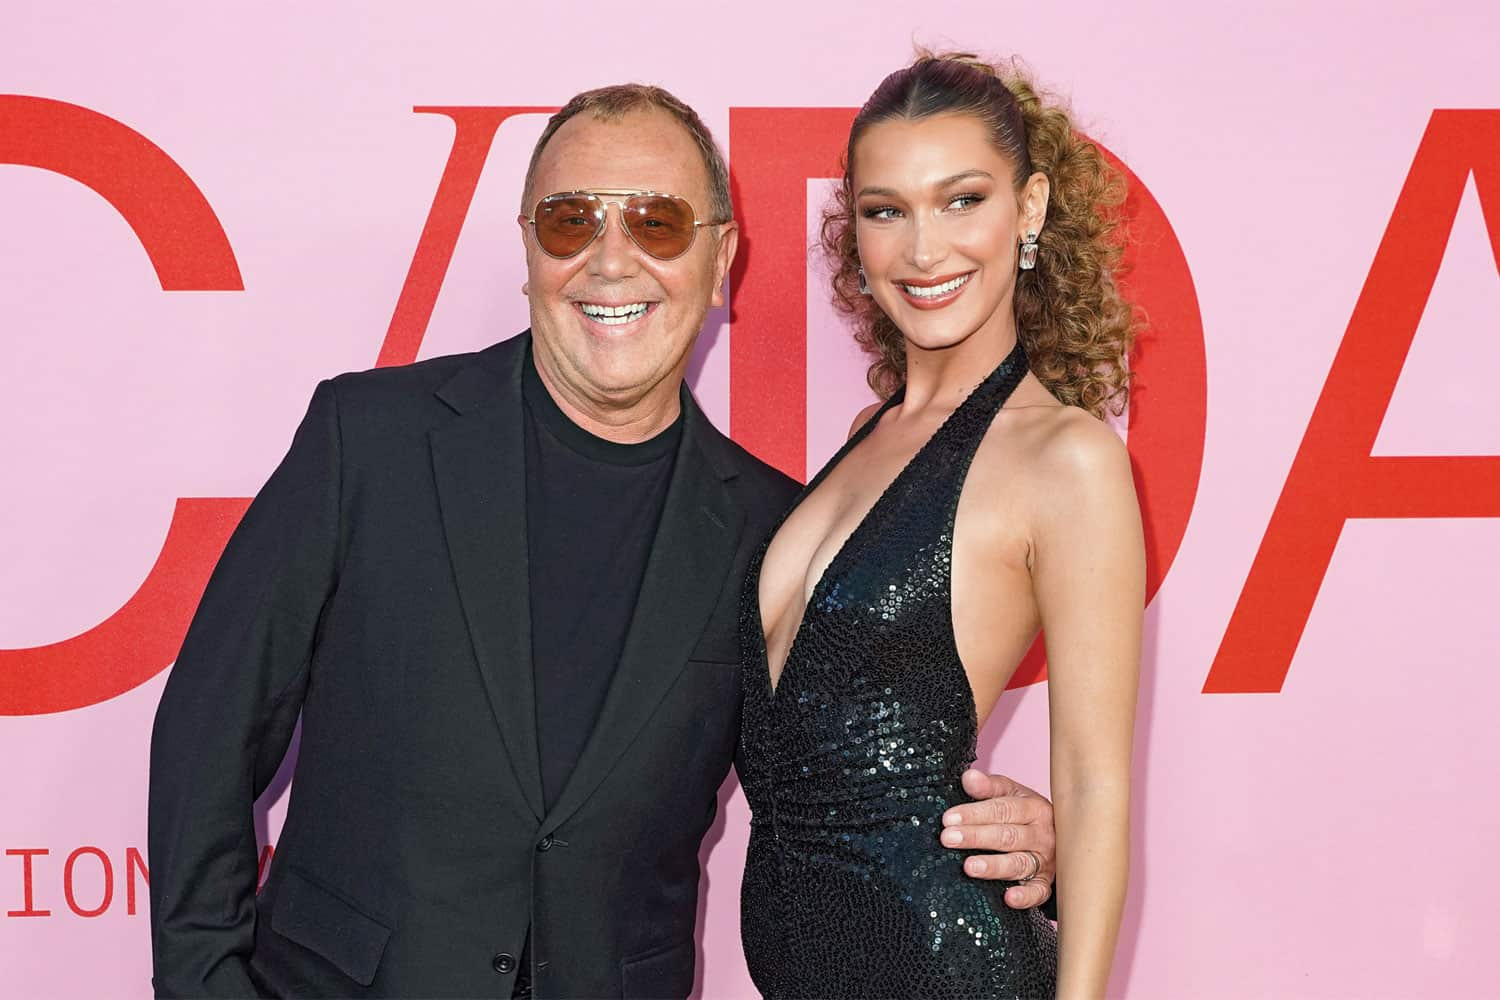 The New Michael Kors Documentary is a Tale of Optimism and Joy